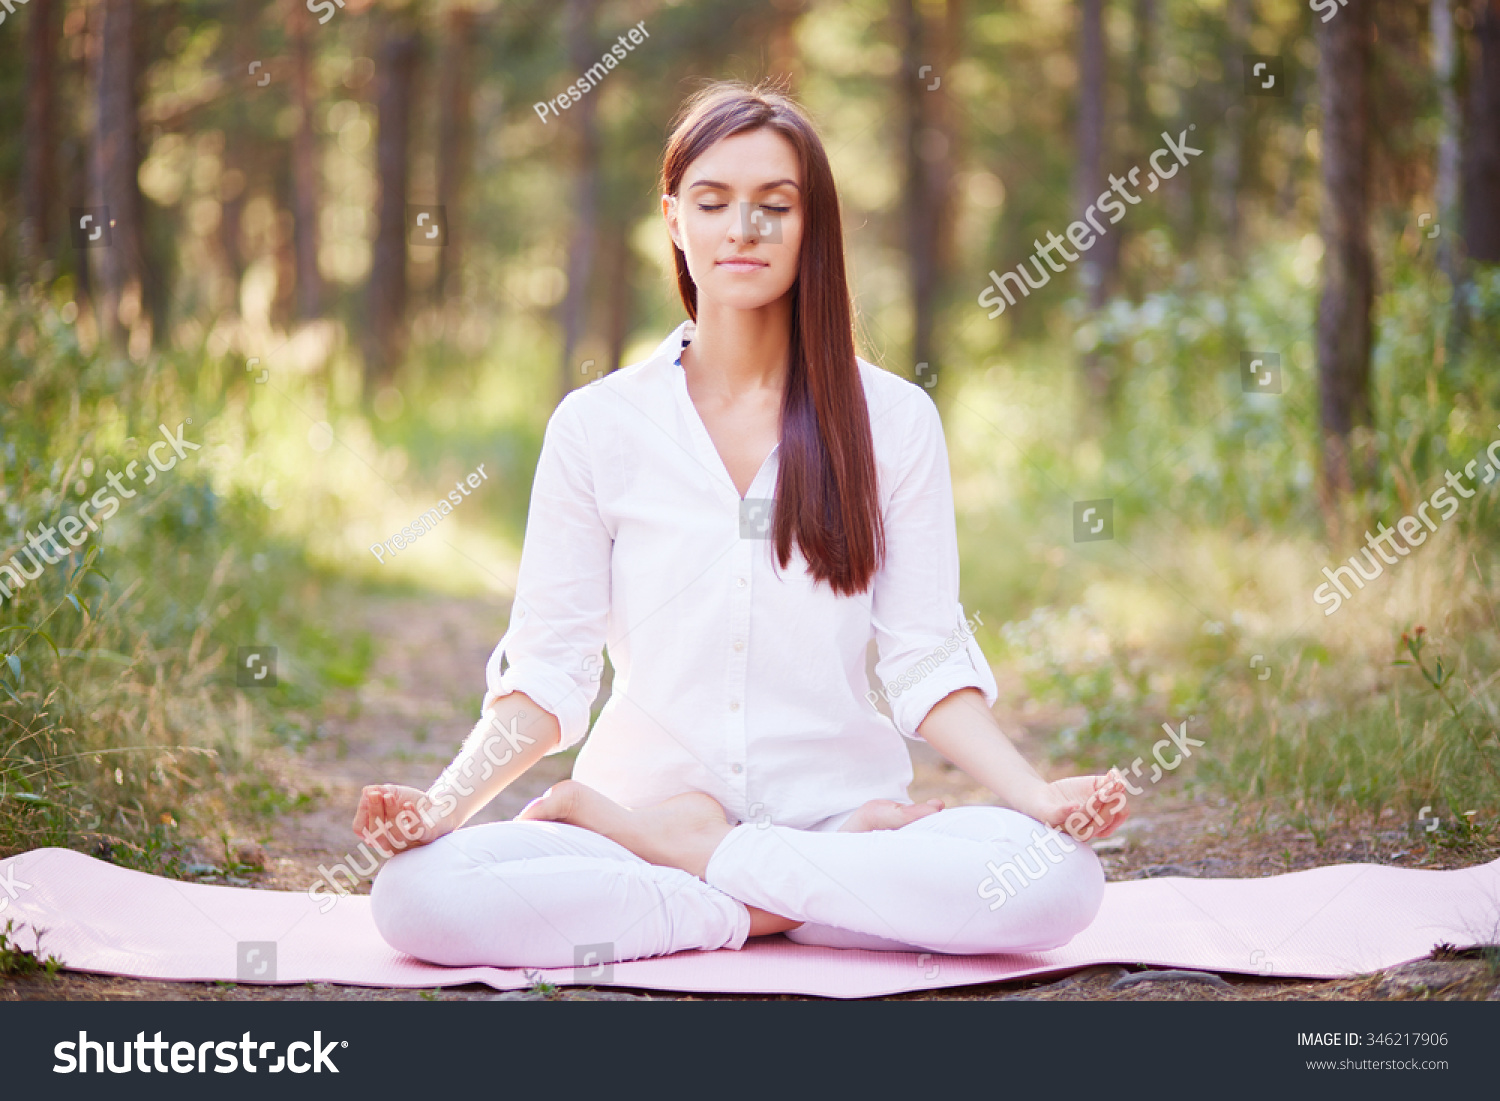 Beautiful Woman Meditating Nature Stock Photo Edit Now 346217906